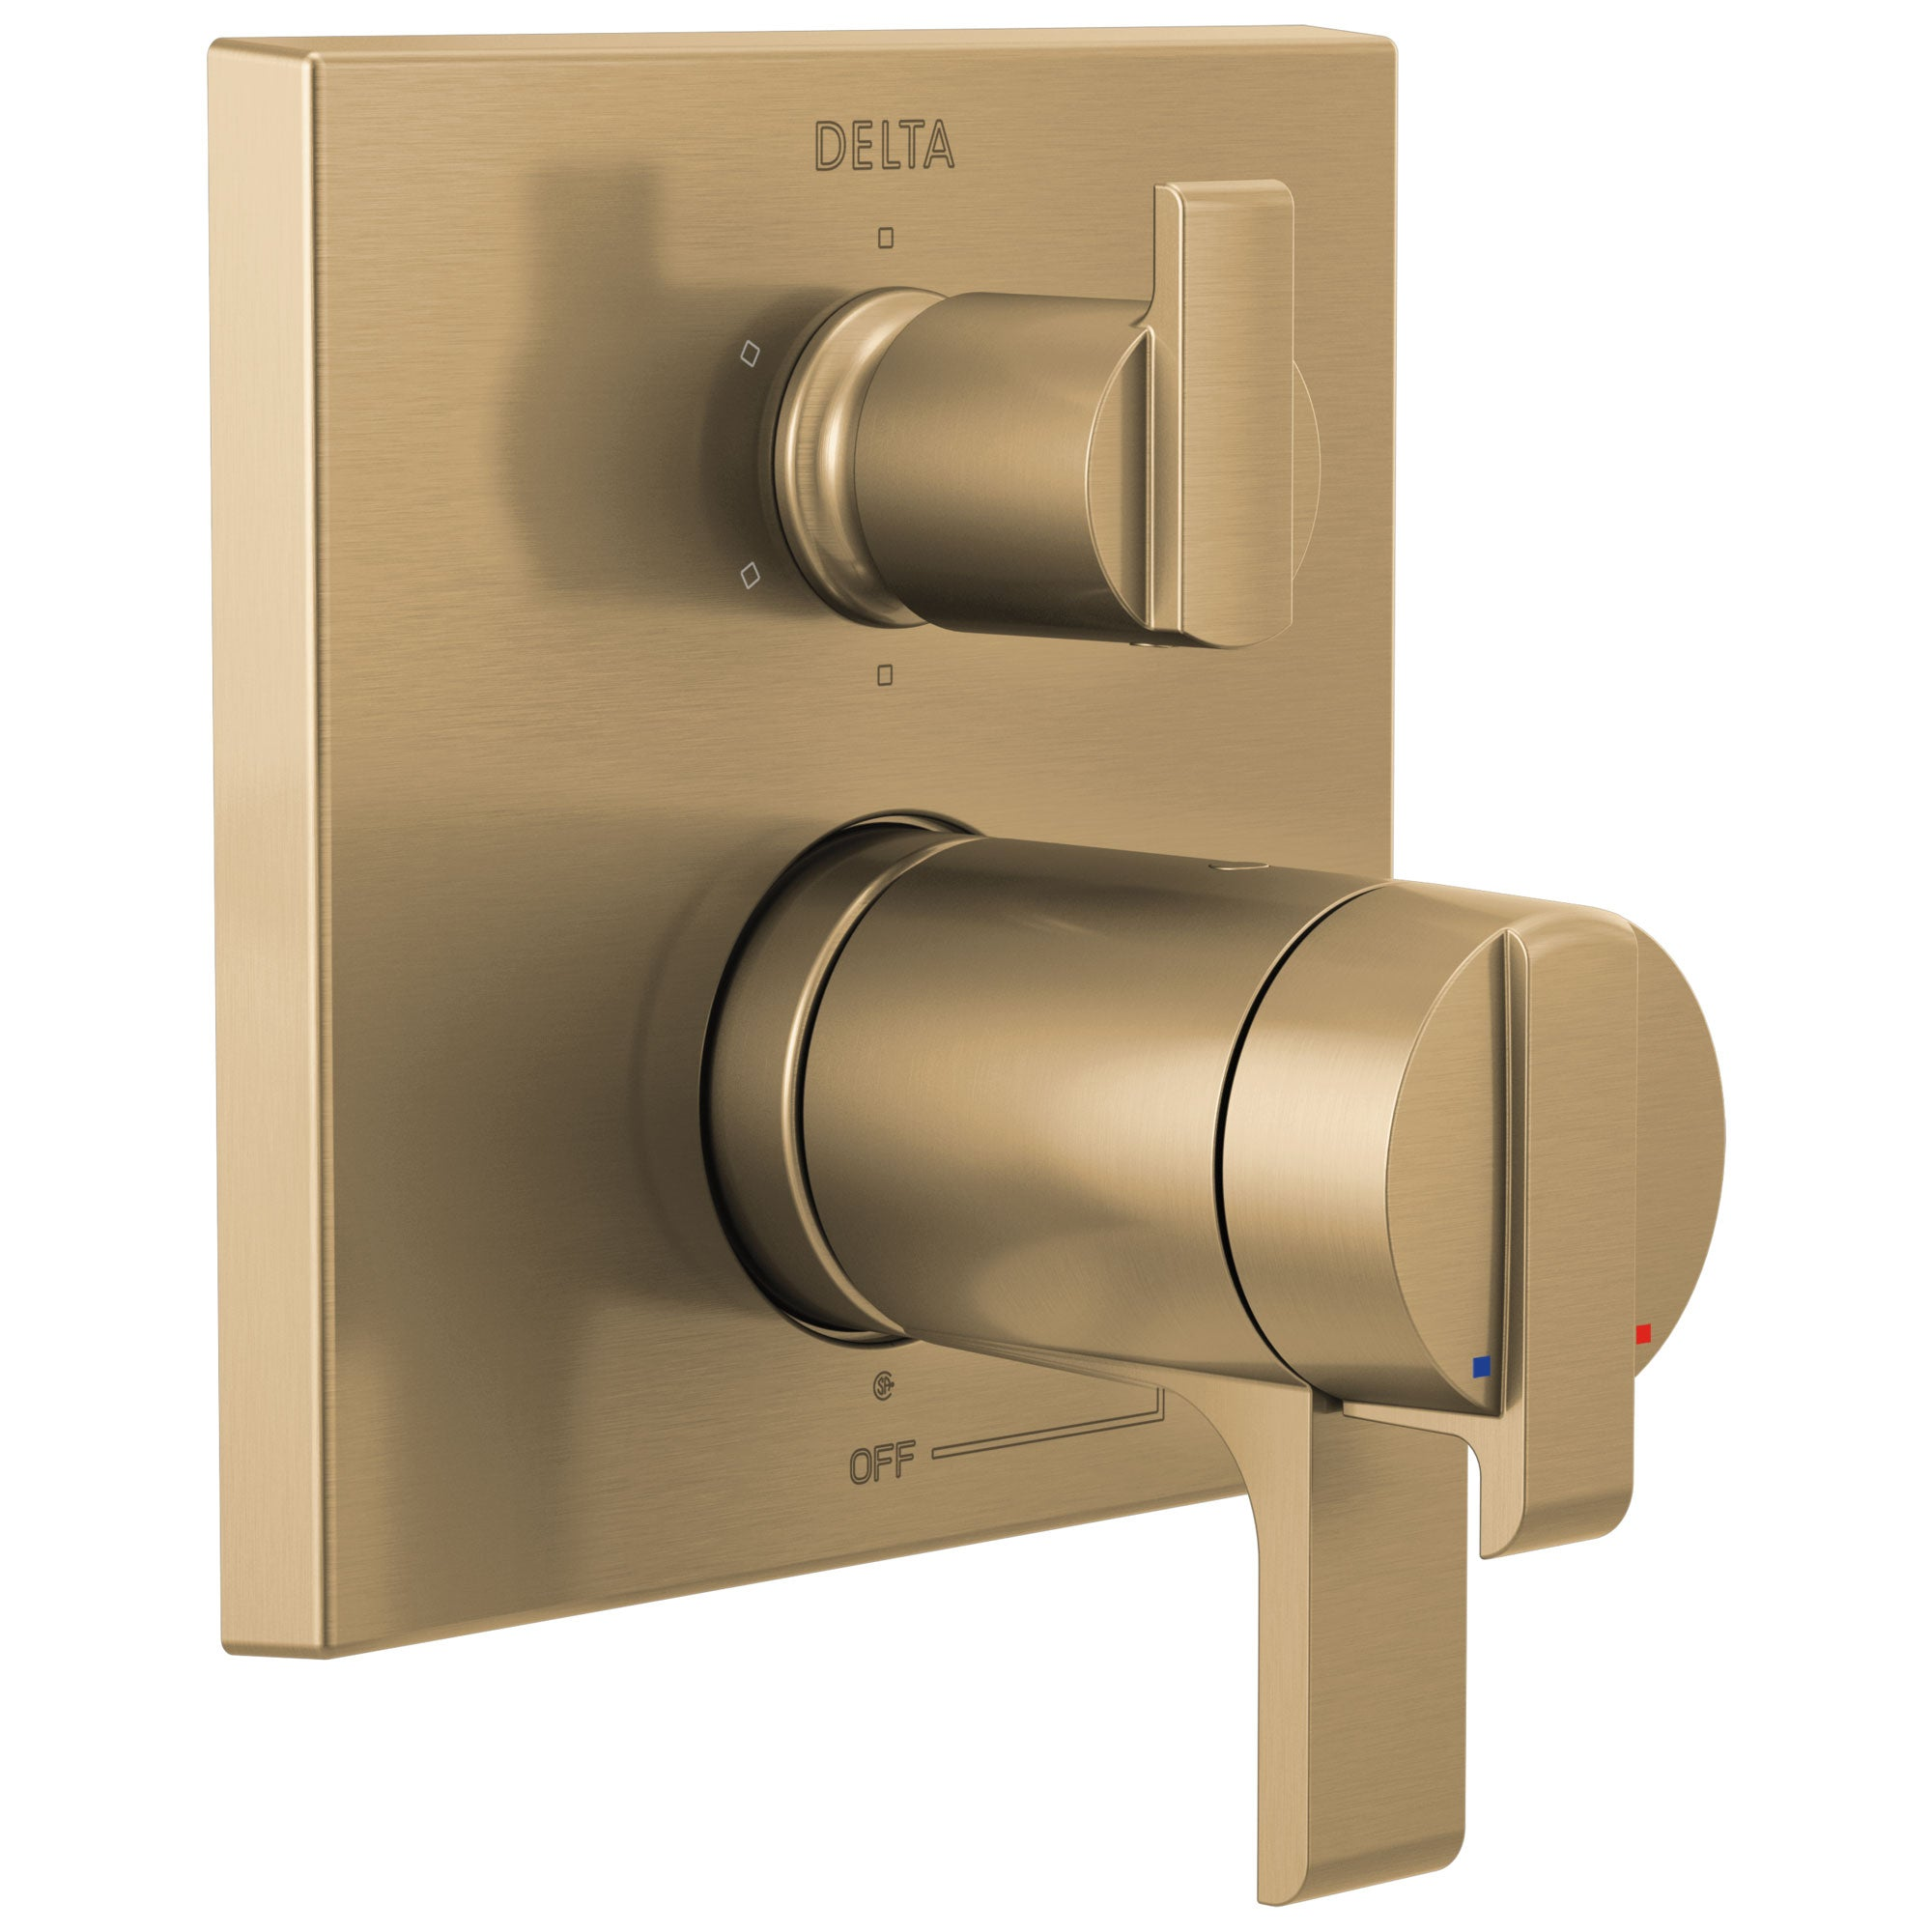 Delta Ara Champagne Bronze Finish Modern Thermostatic Shower System Control with 6-Setting Integrated Diverter Includes Rough Valve and Handles D3671V